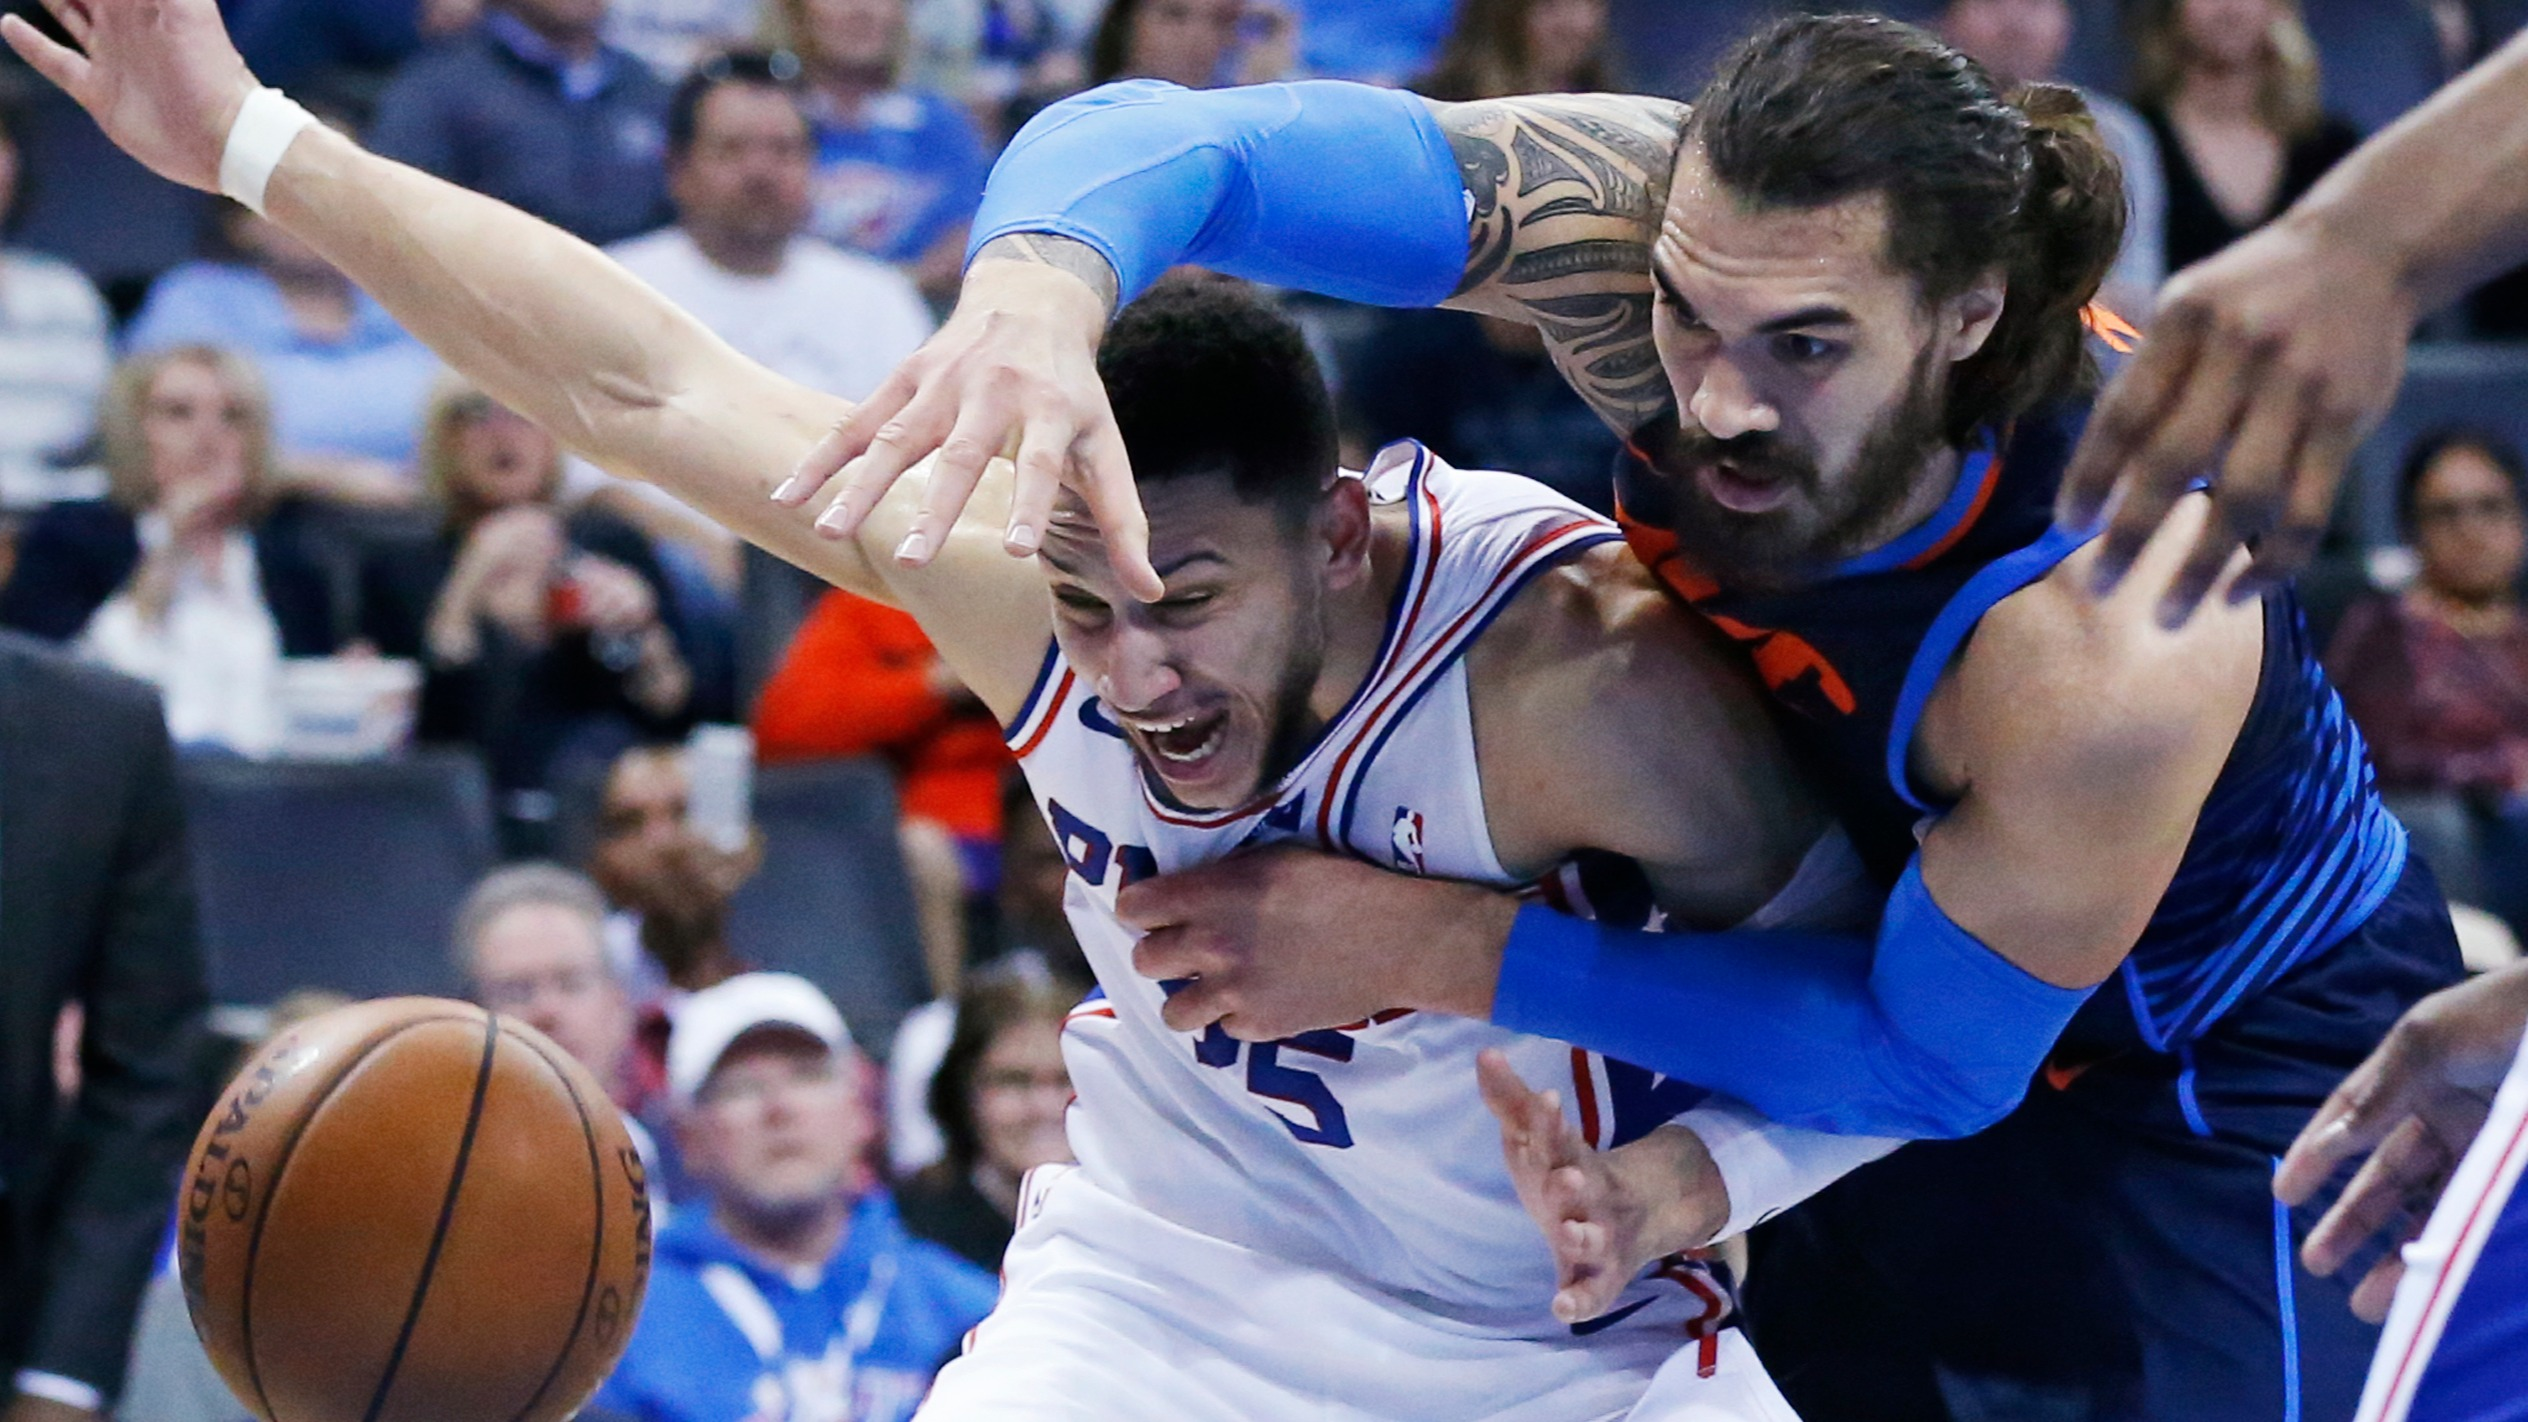 bc00964192b 76ers at Thunder betting lines, odds, trends: Philly underdog to end  19-game losing streak vs. OKC